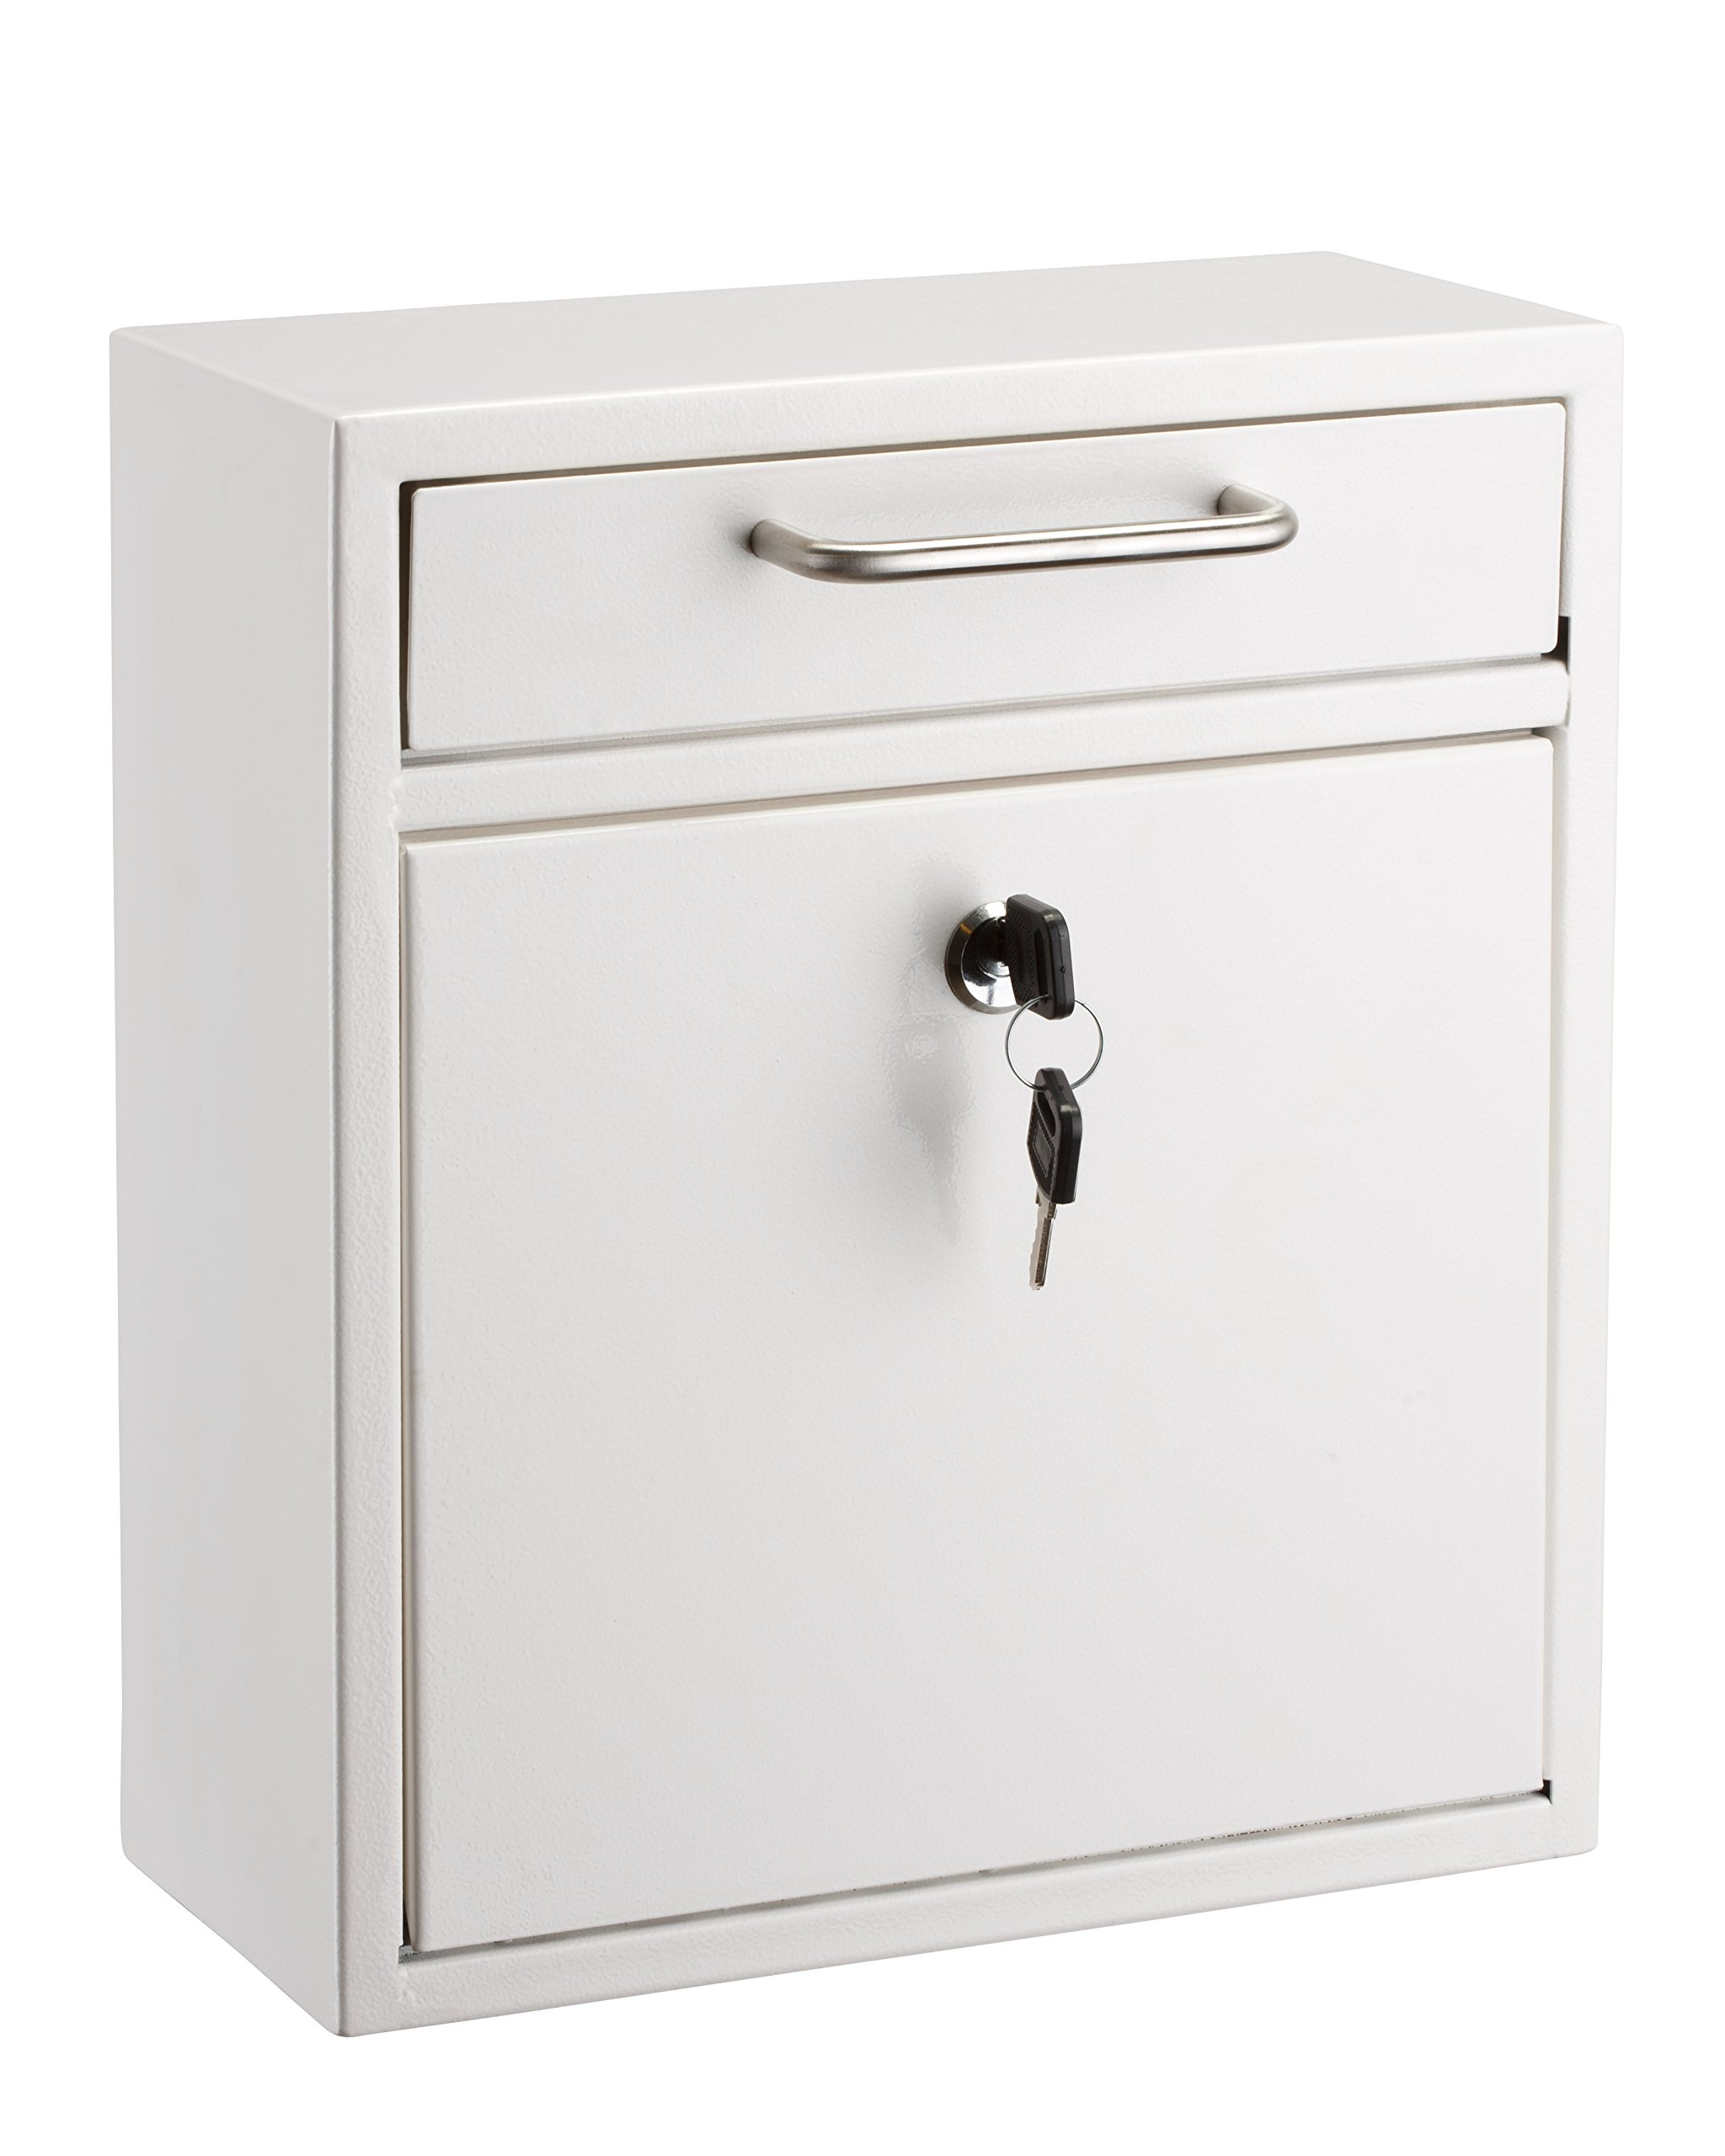 AdirOffice Locking Drop Box - Wall Mounted Mailbox - (Medium, White)